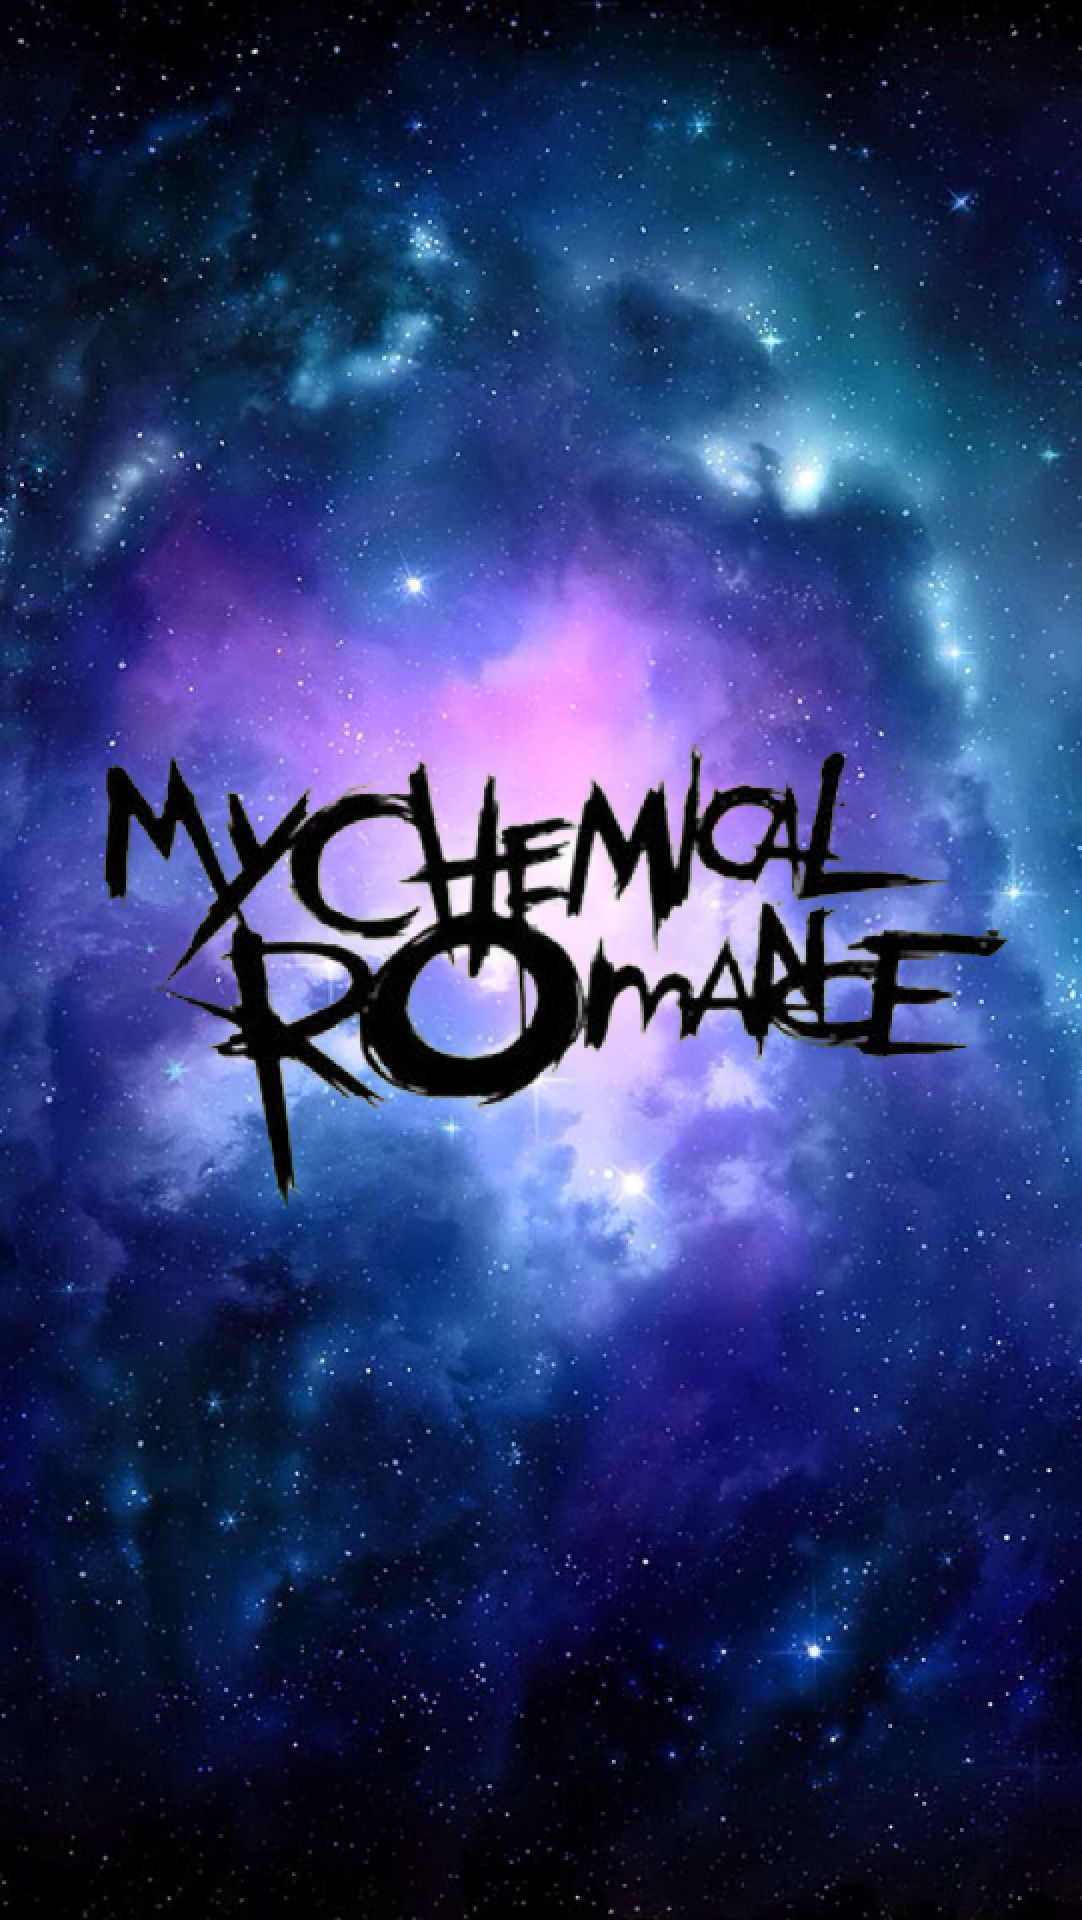 My Chemical Romance Wallpaper For Iphone 5 That I Made Comment If